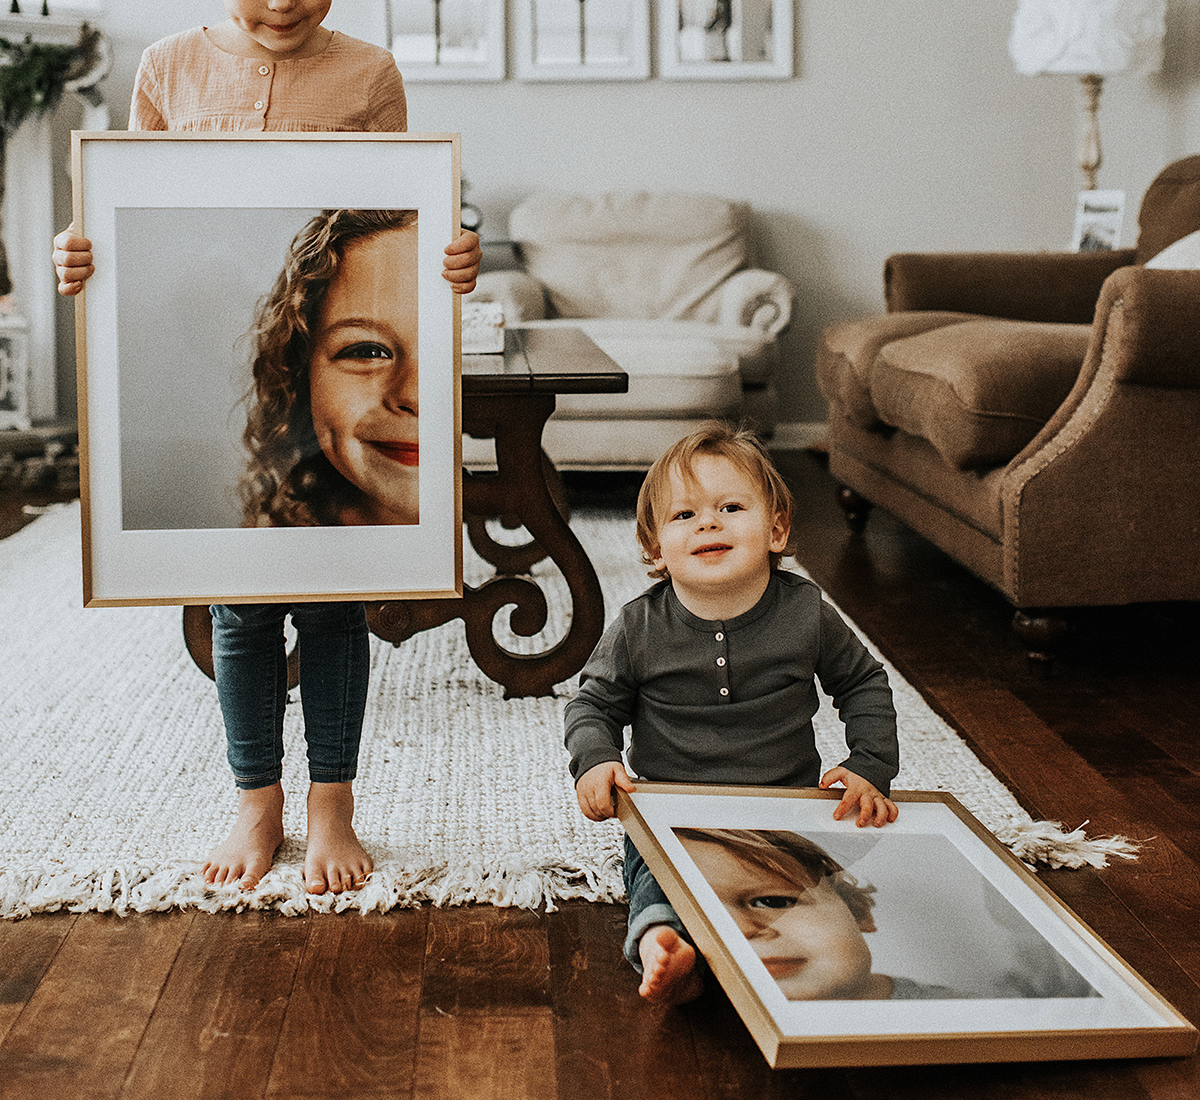 Two young siblings hold up enlarged and framed photos of themselves